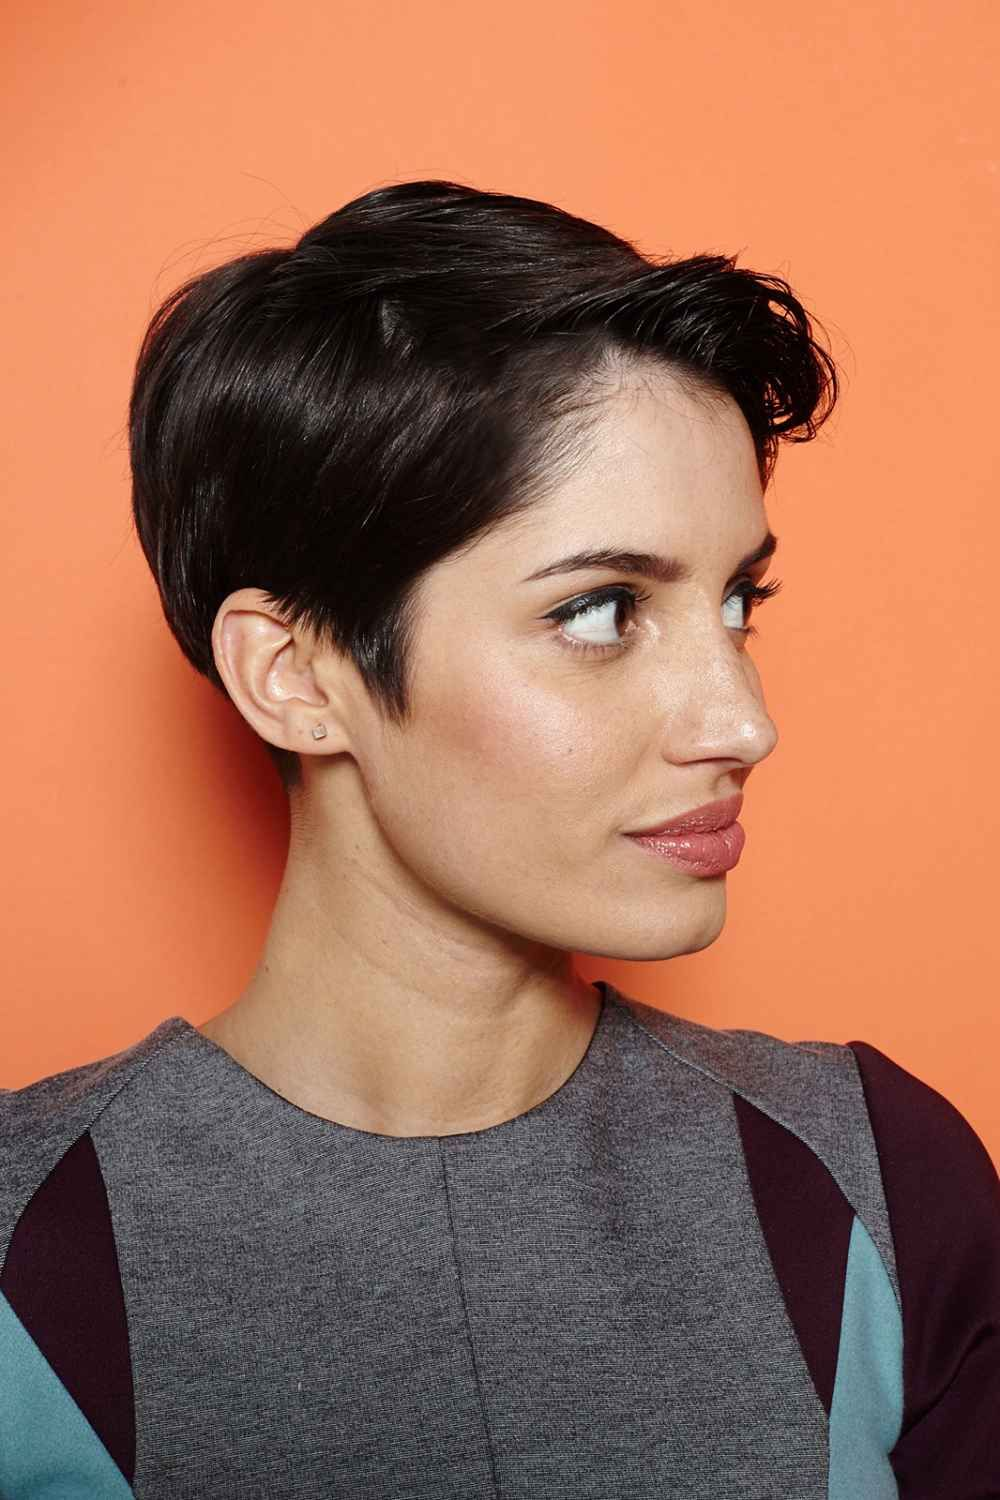 Pixie hairstyles new styles for really short hair pixie